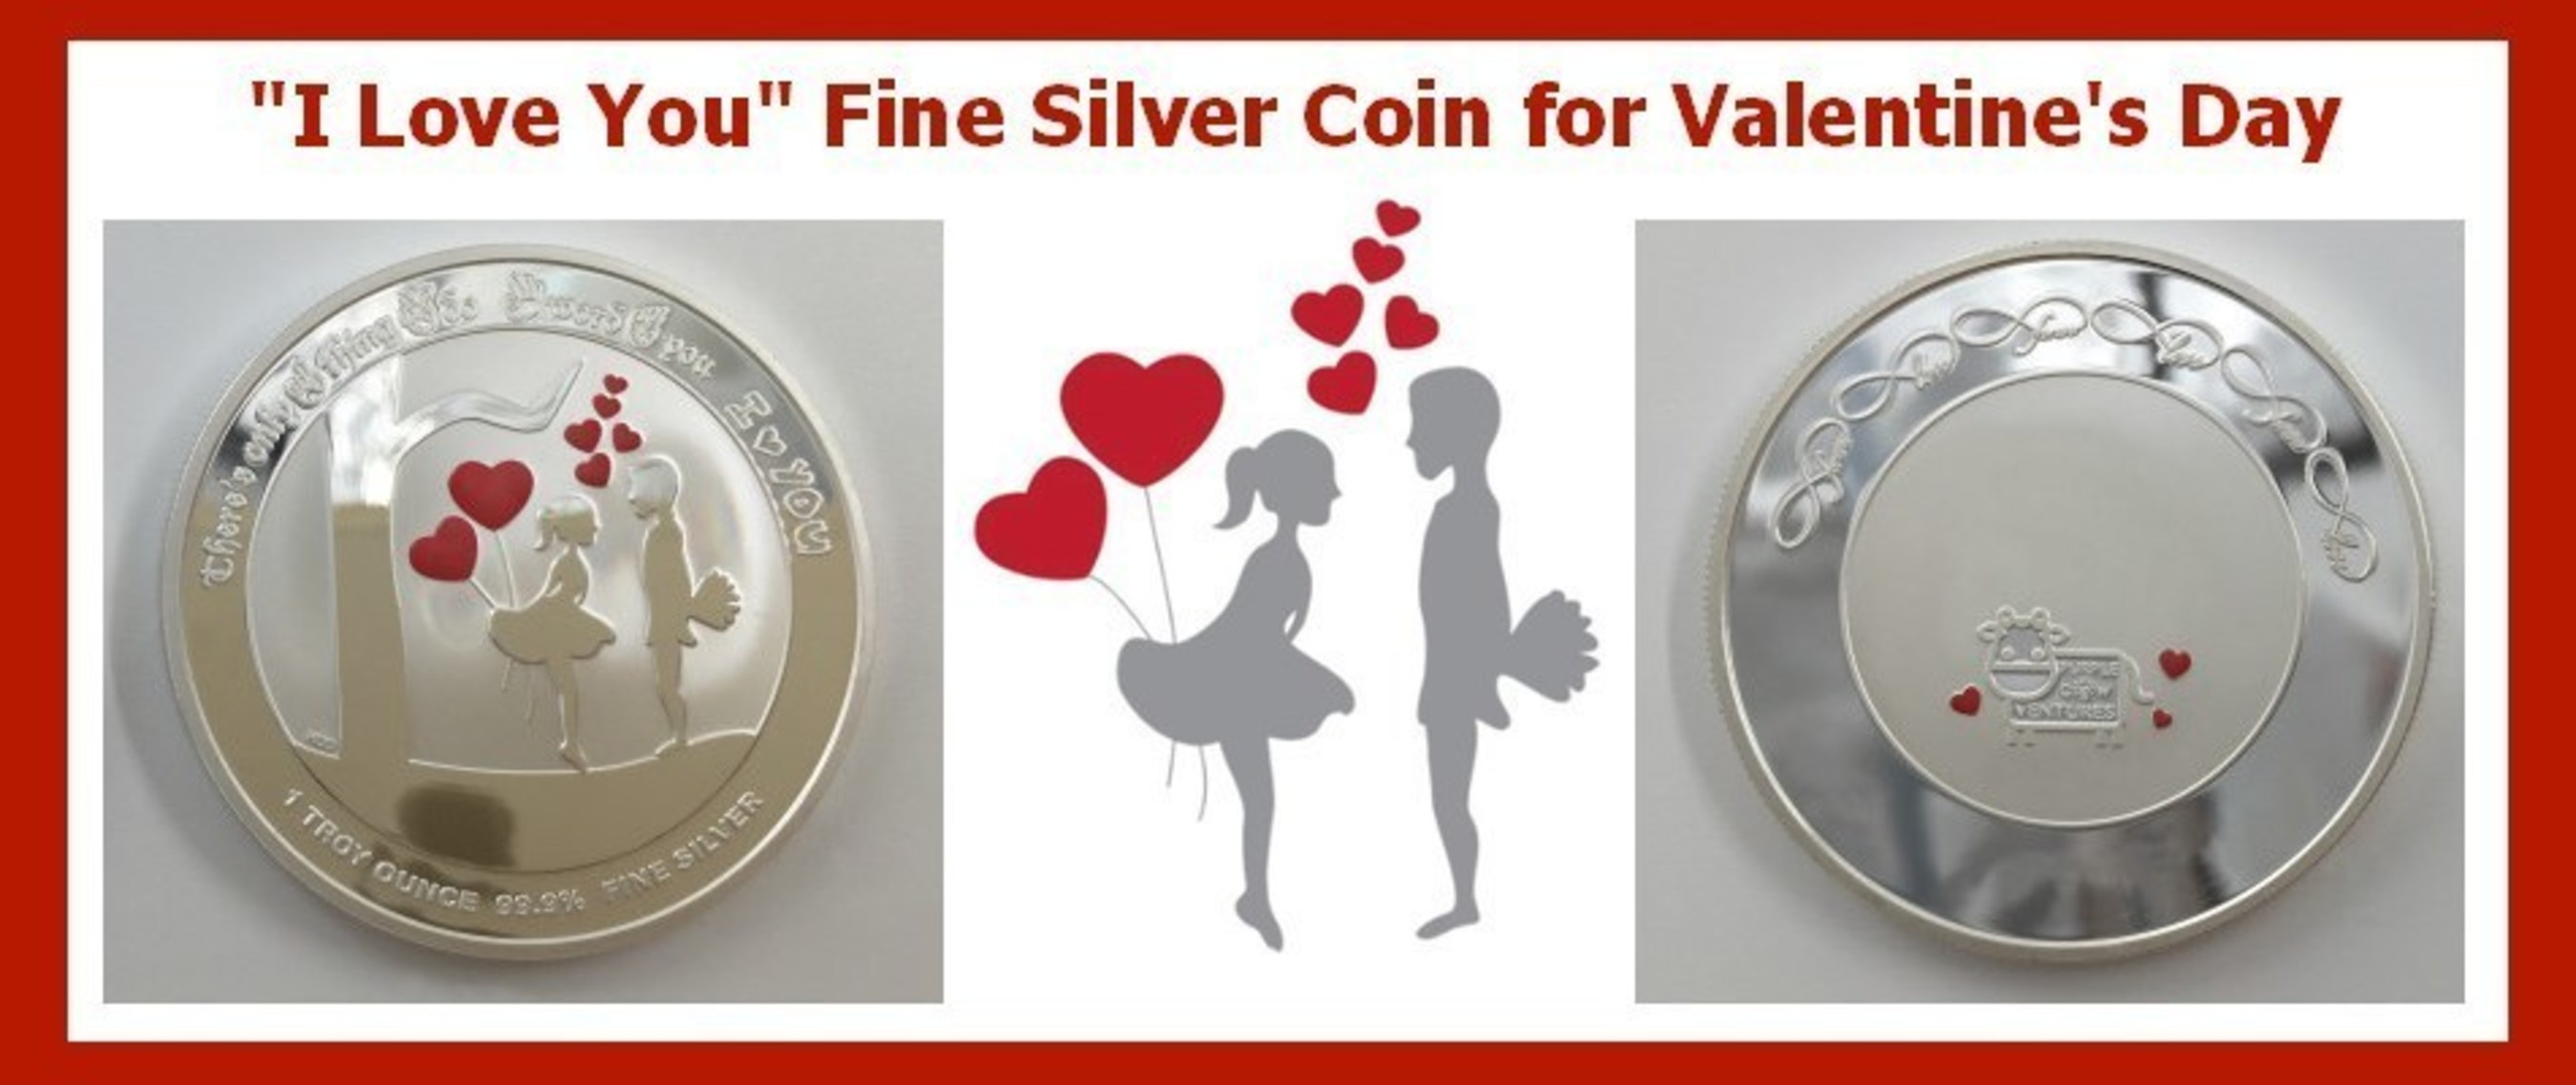 The I Love You Silver Coin Is Perfect for Couples Who Want a Gift That Lasts as Long as Their Love